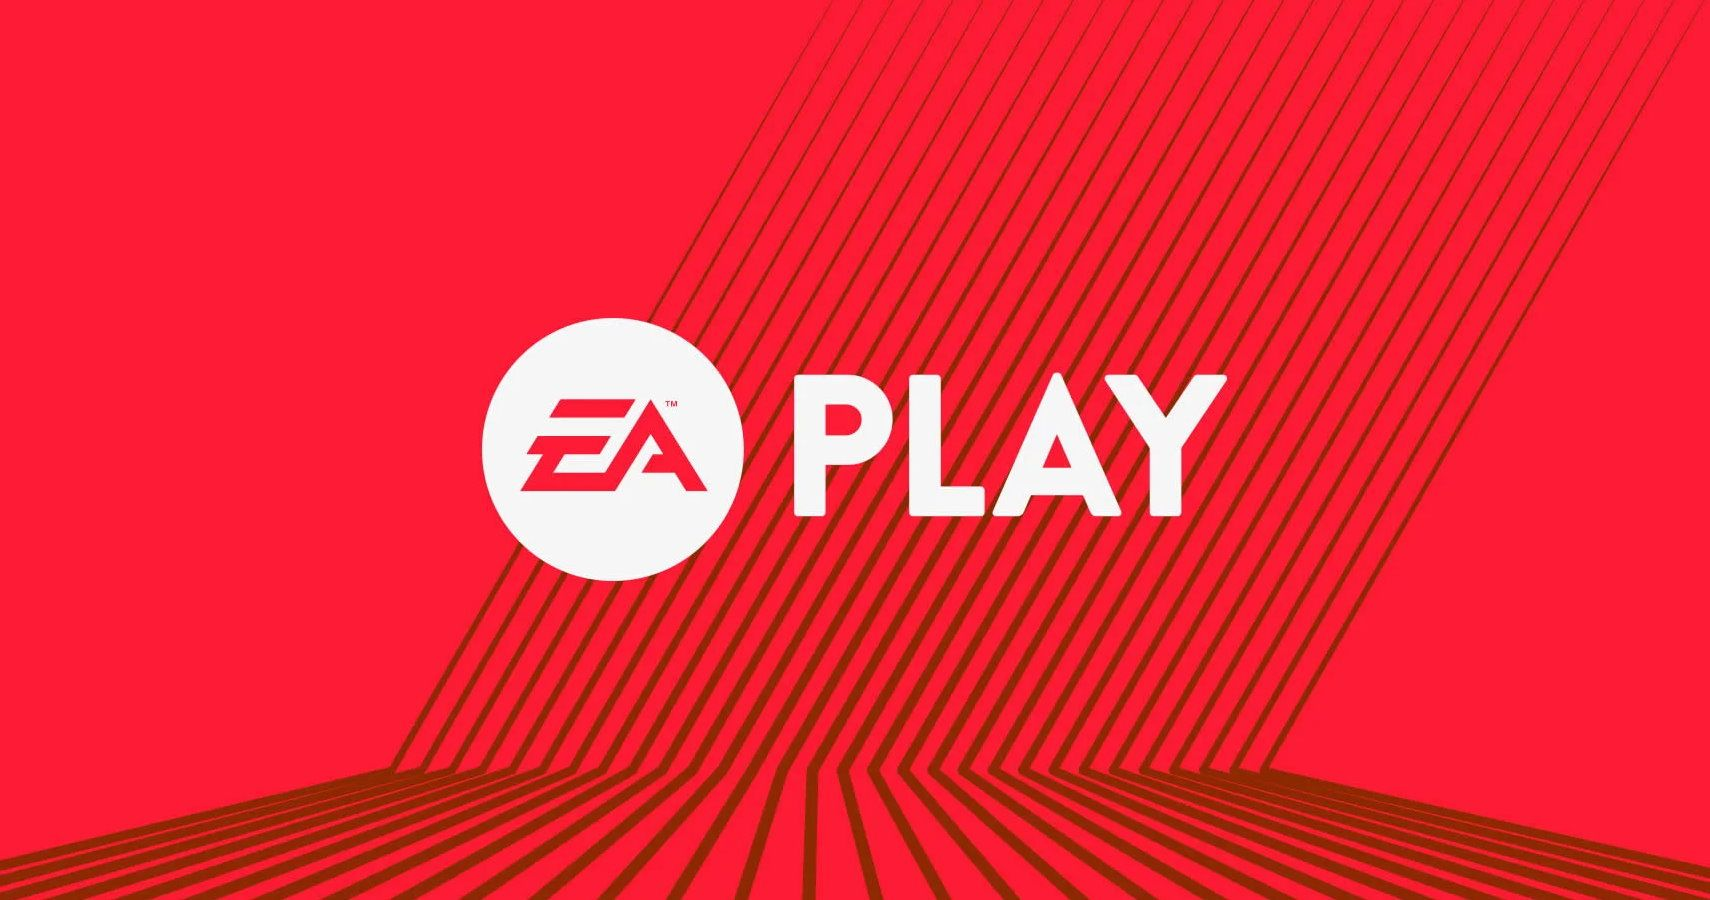 EA now has a date for this year's EA Play Live